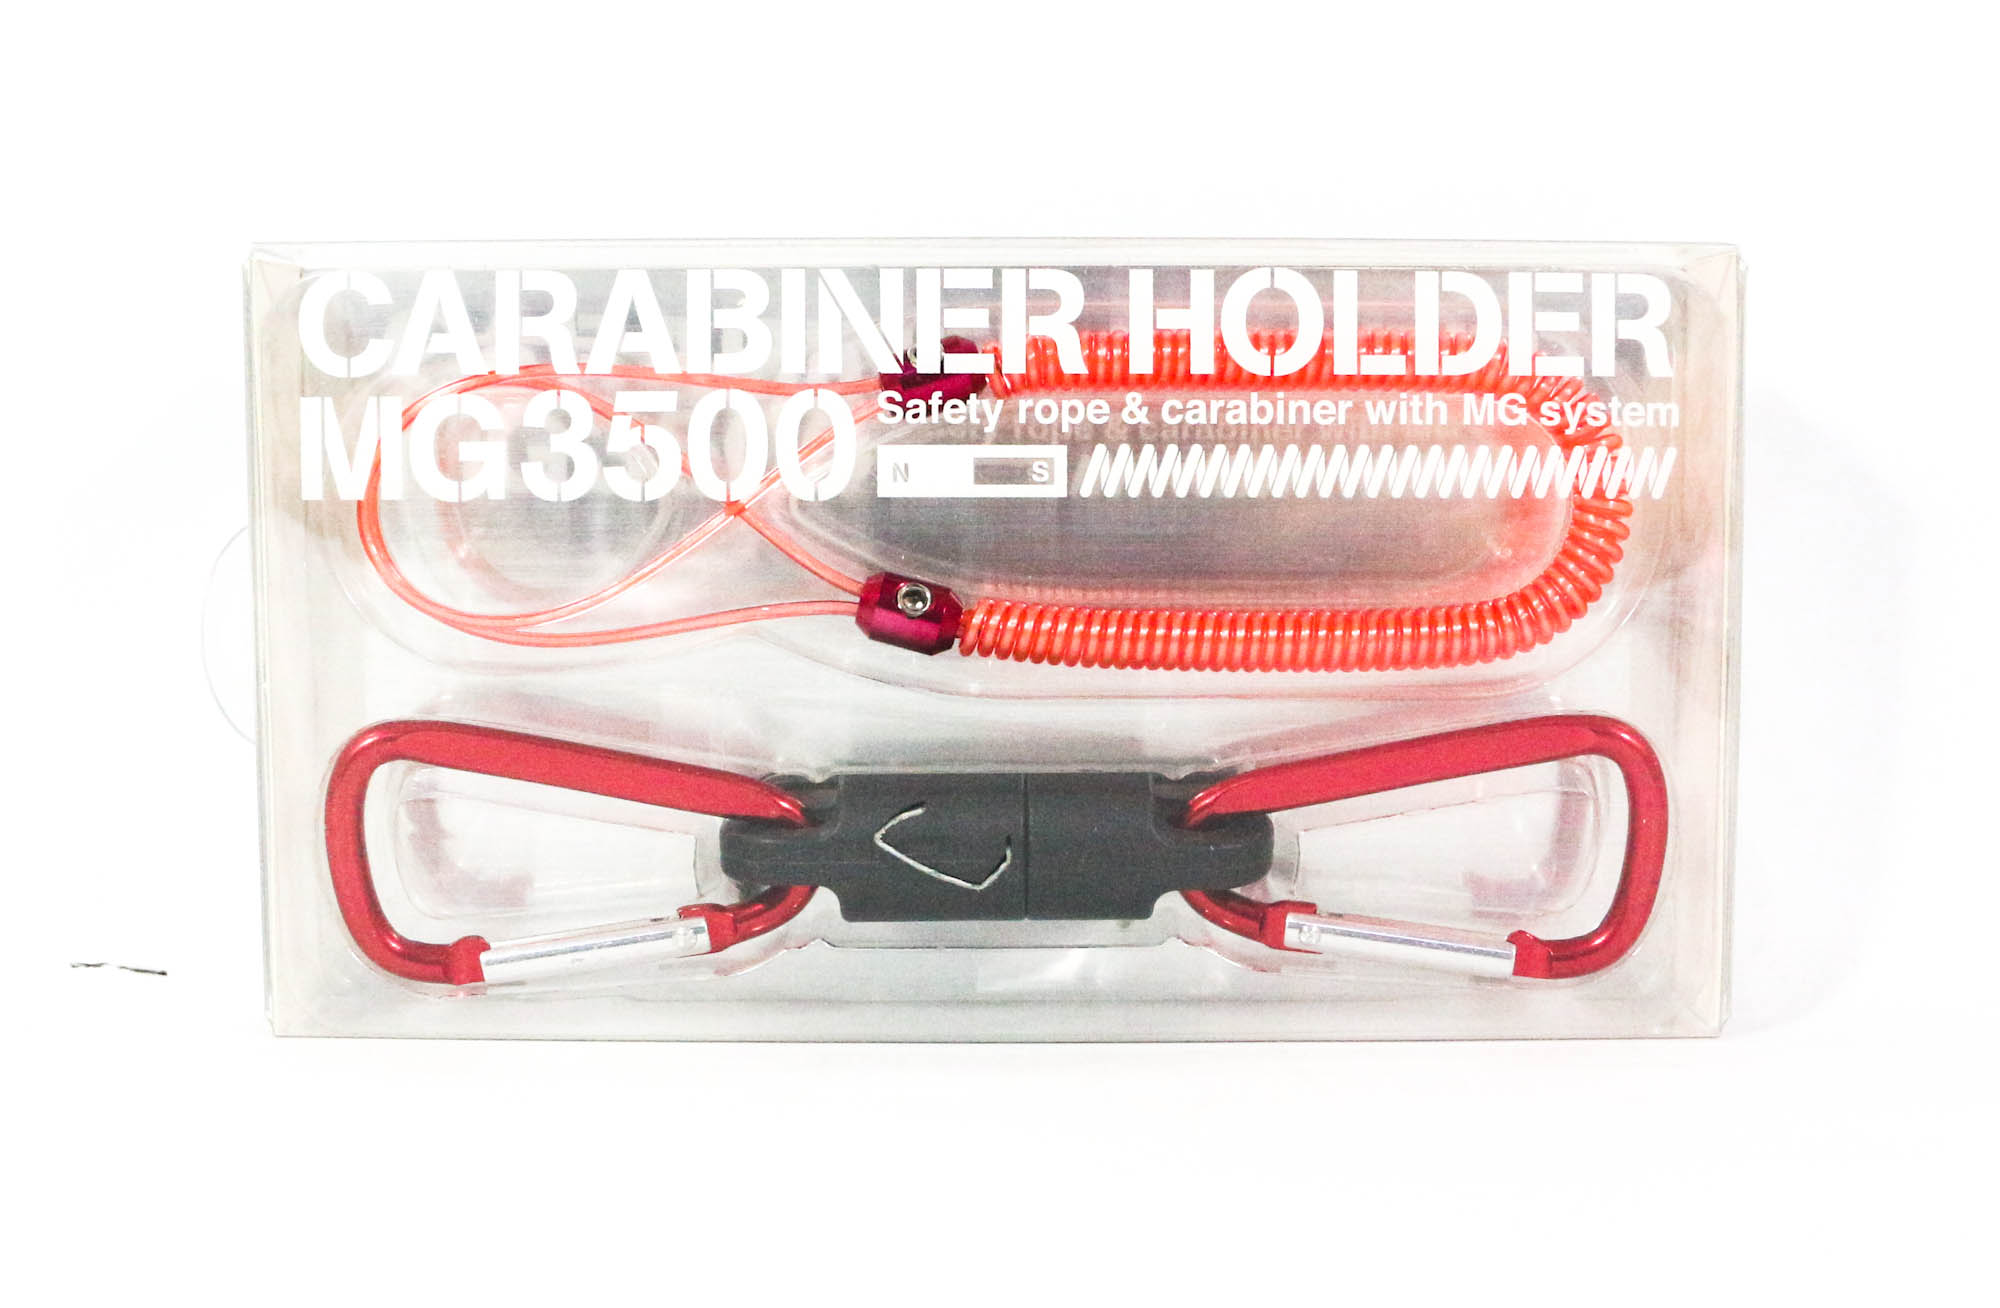 Daiichi #33272 Safety Rope CarabinerMG 3500 Magnet System 3.5 Kg Red (2727)